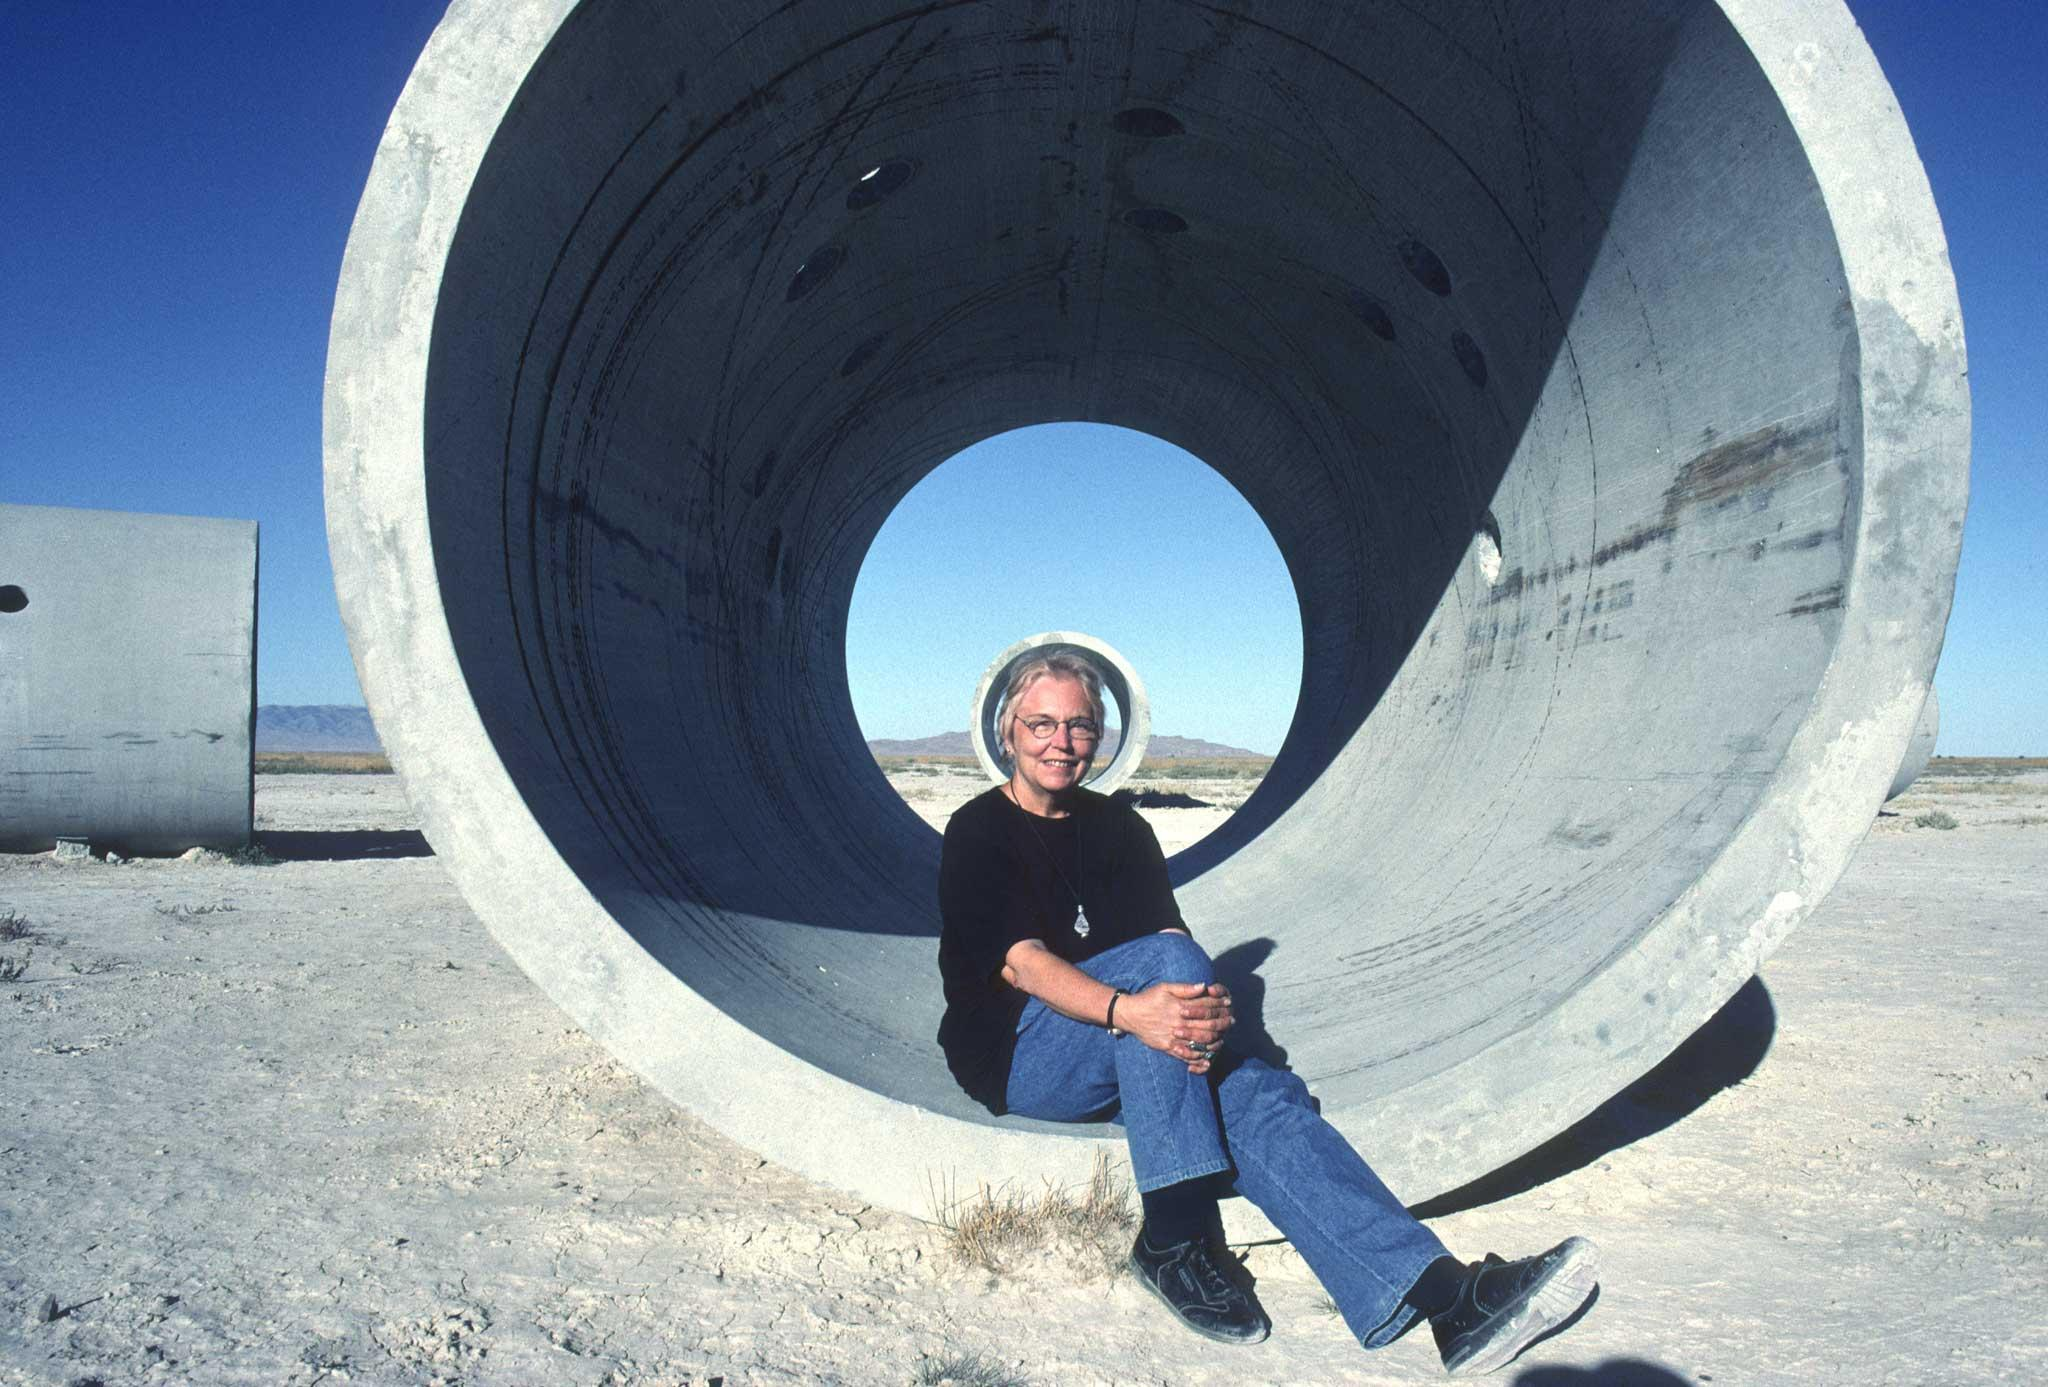 woman seated at the center of a large circular concrete tunnel with blue skies in the background.